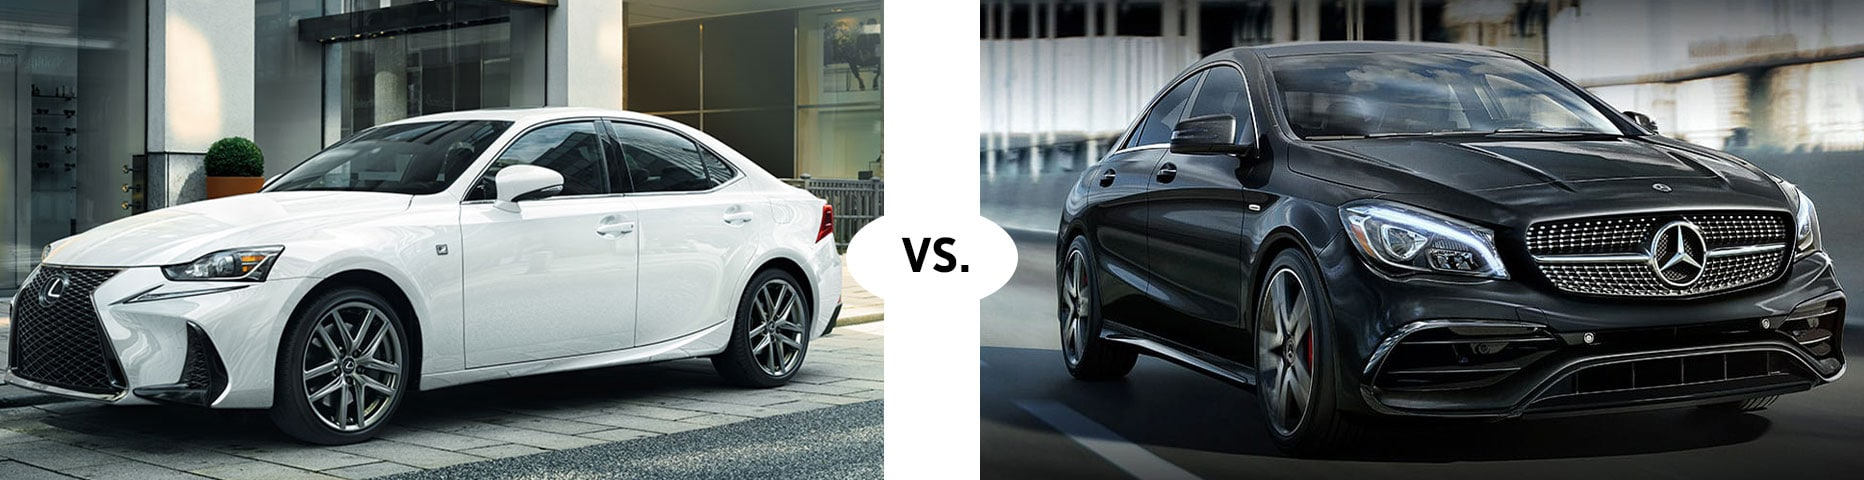 2019 LEXUS IS 300 VS. 2019 MERCEDES BENZ CLA